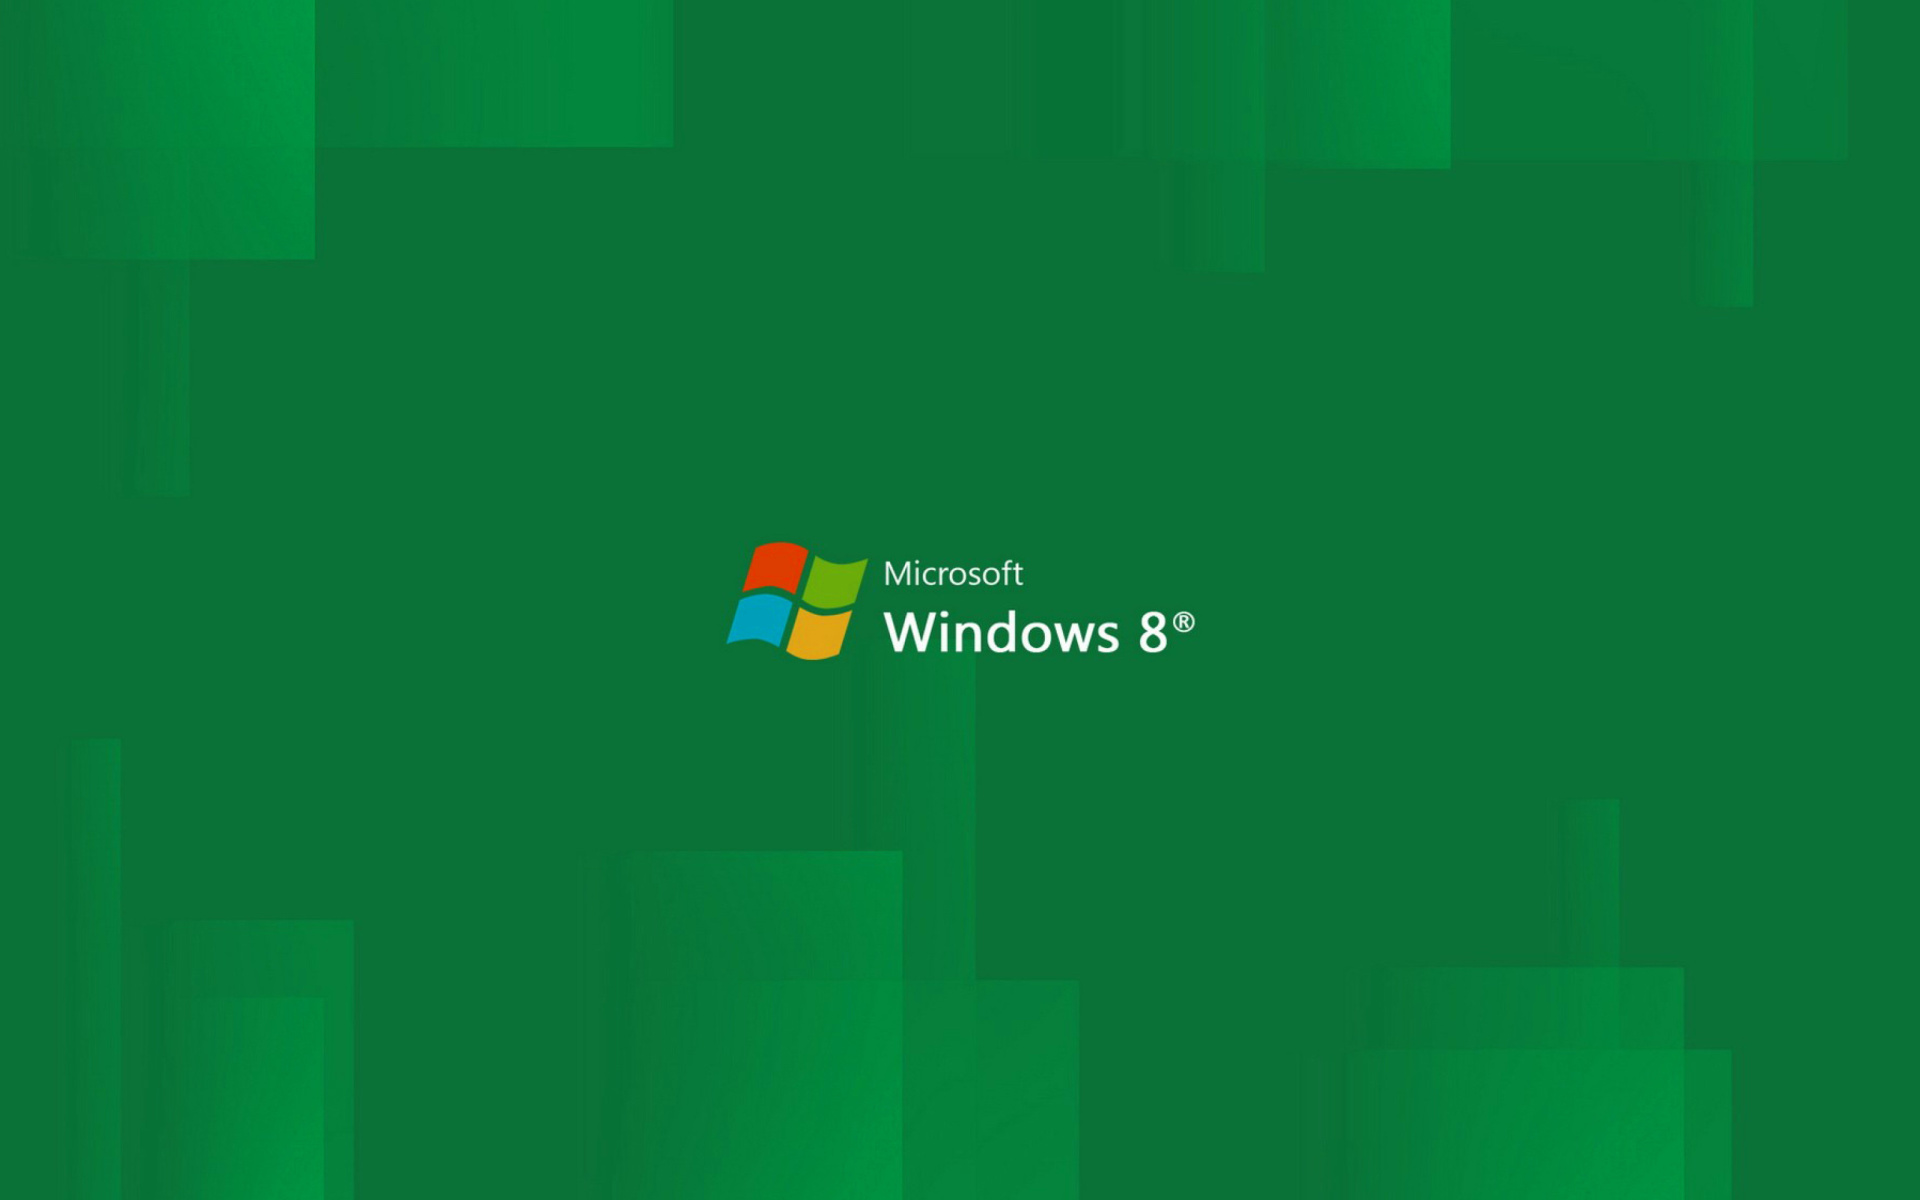 Windows 8 fondos de pantalla gratis para widescreen - Fondos de escritorio hd para windows ...